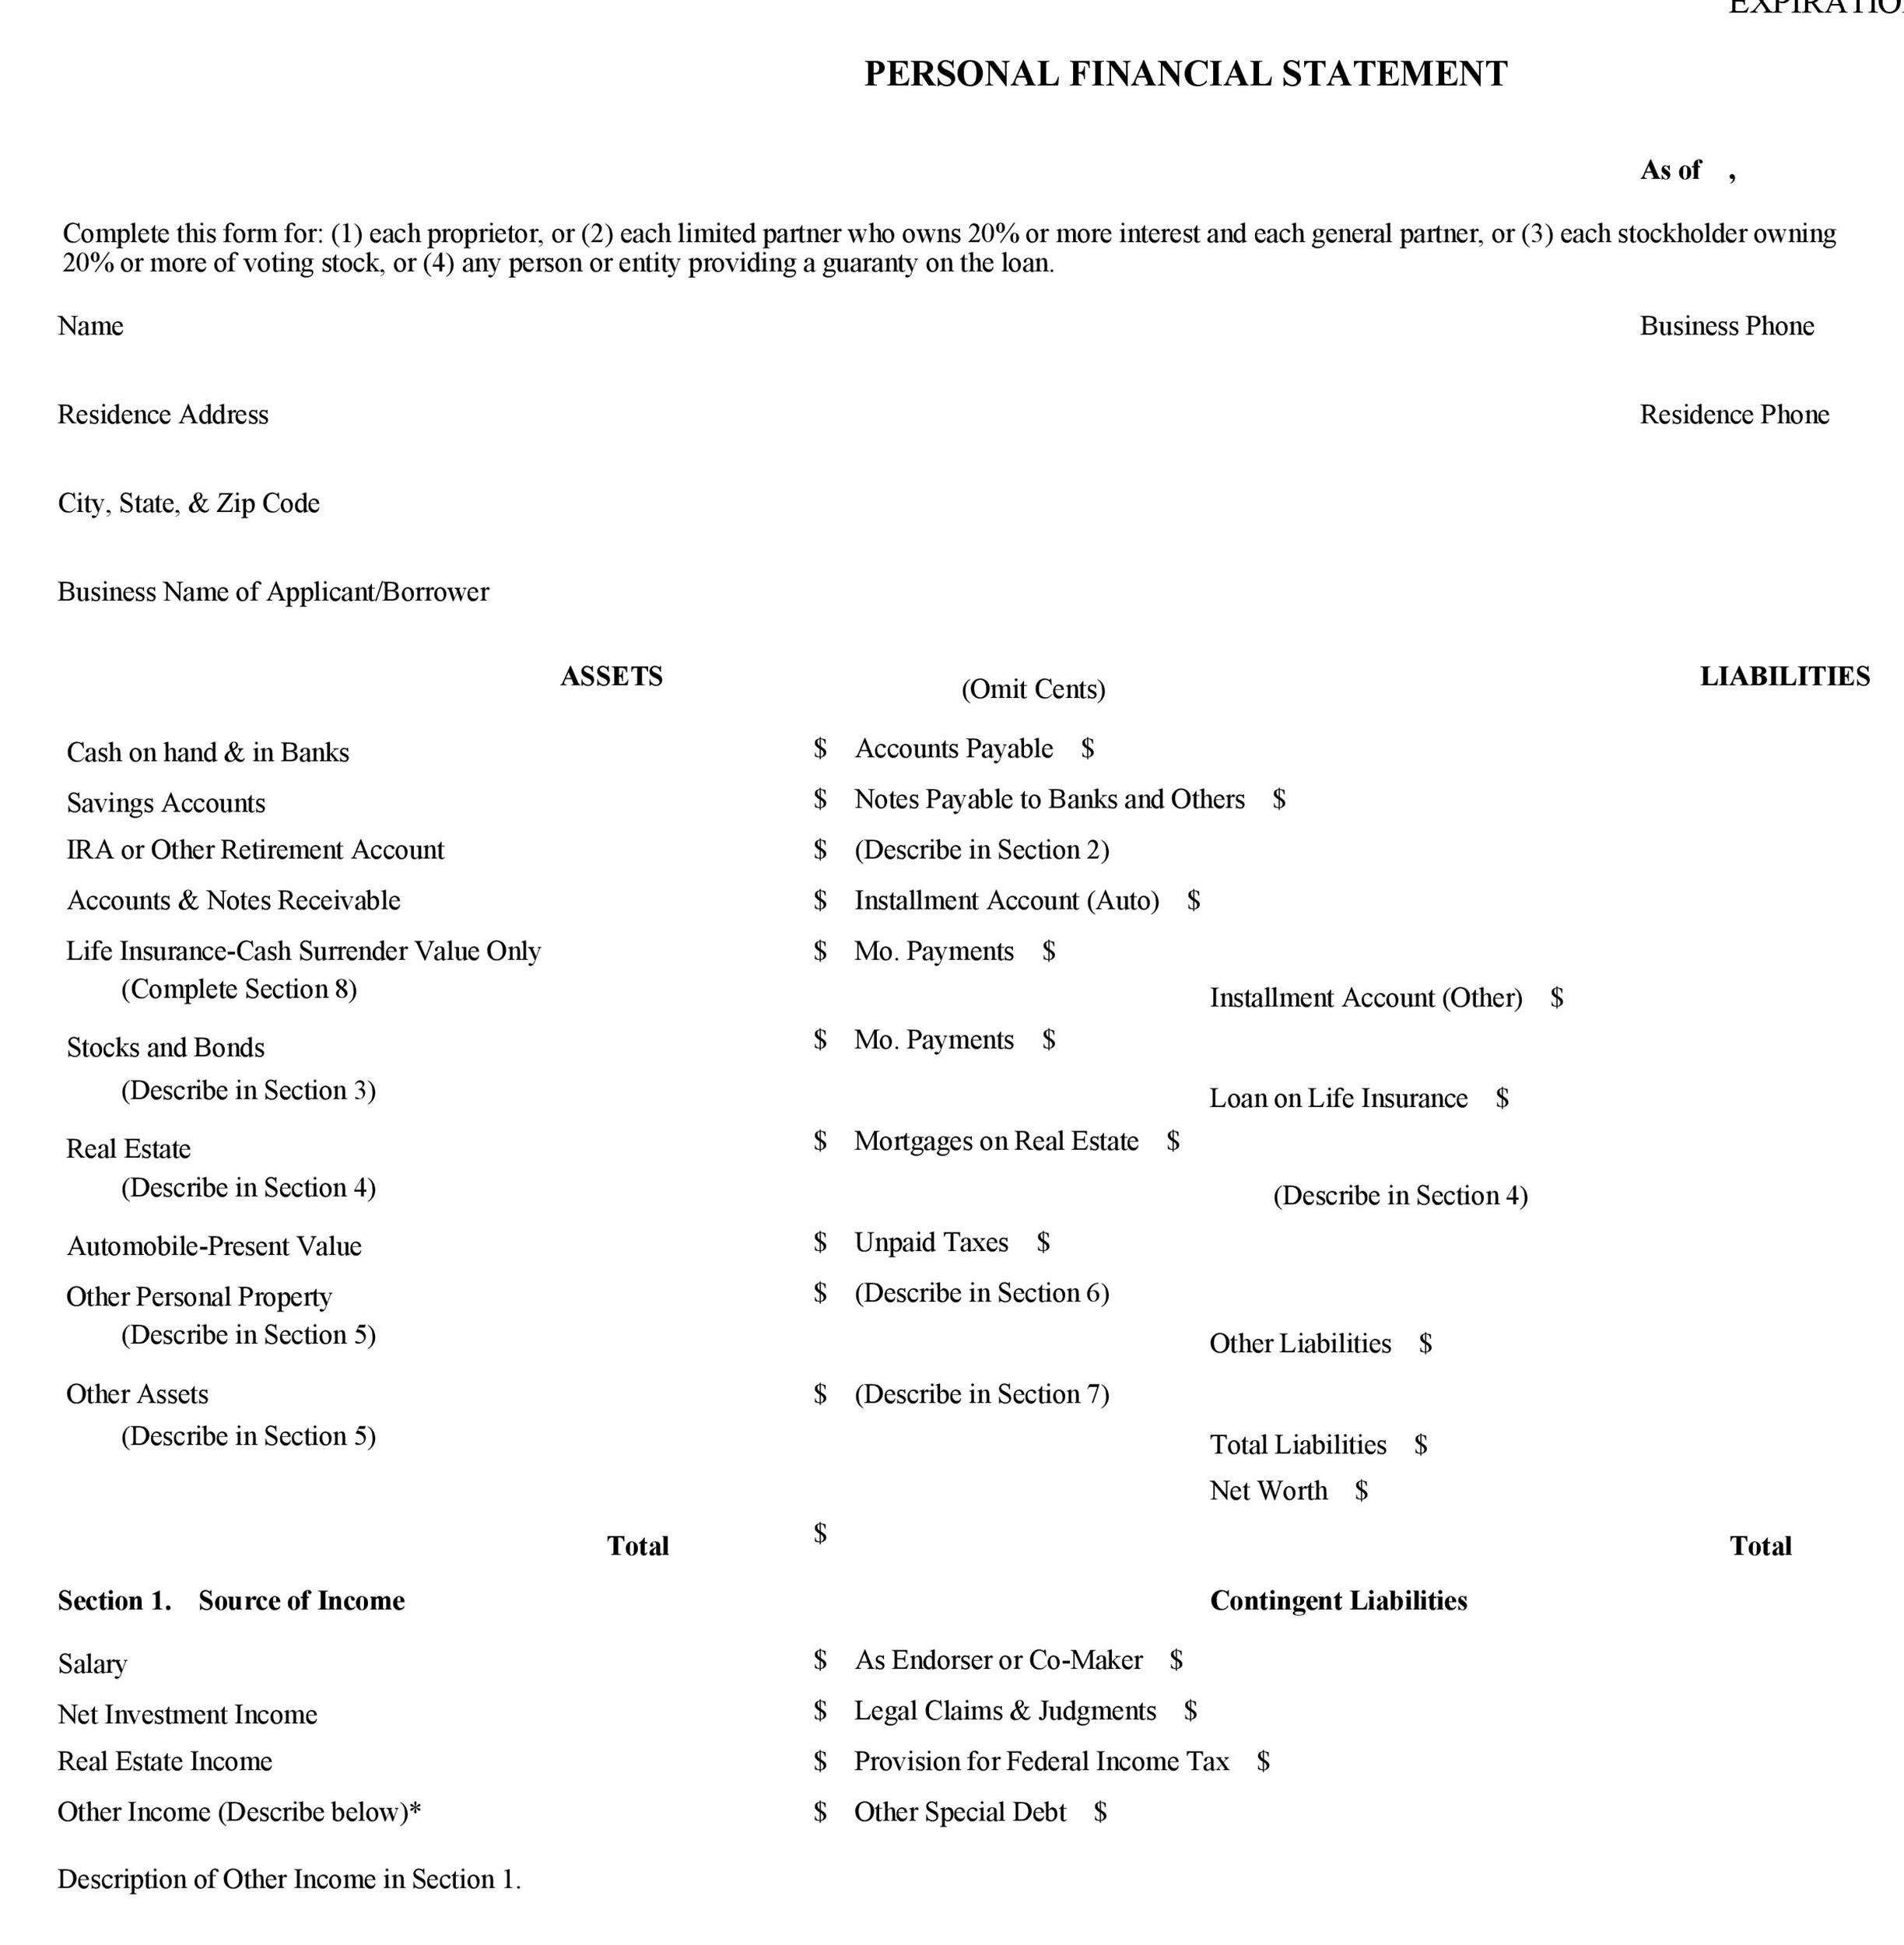 40+ Personal Financial Statement Templates  Forms - Template Lab - net worth form